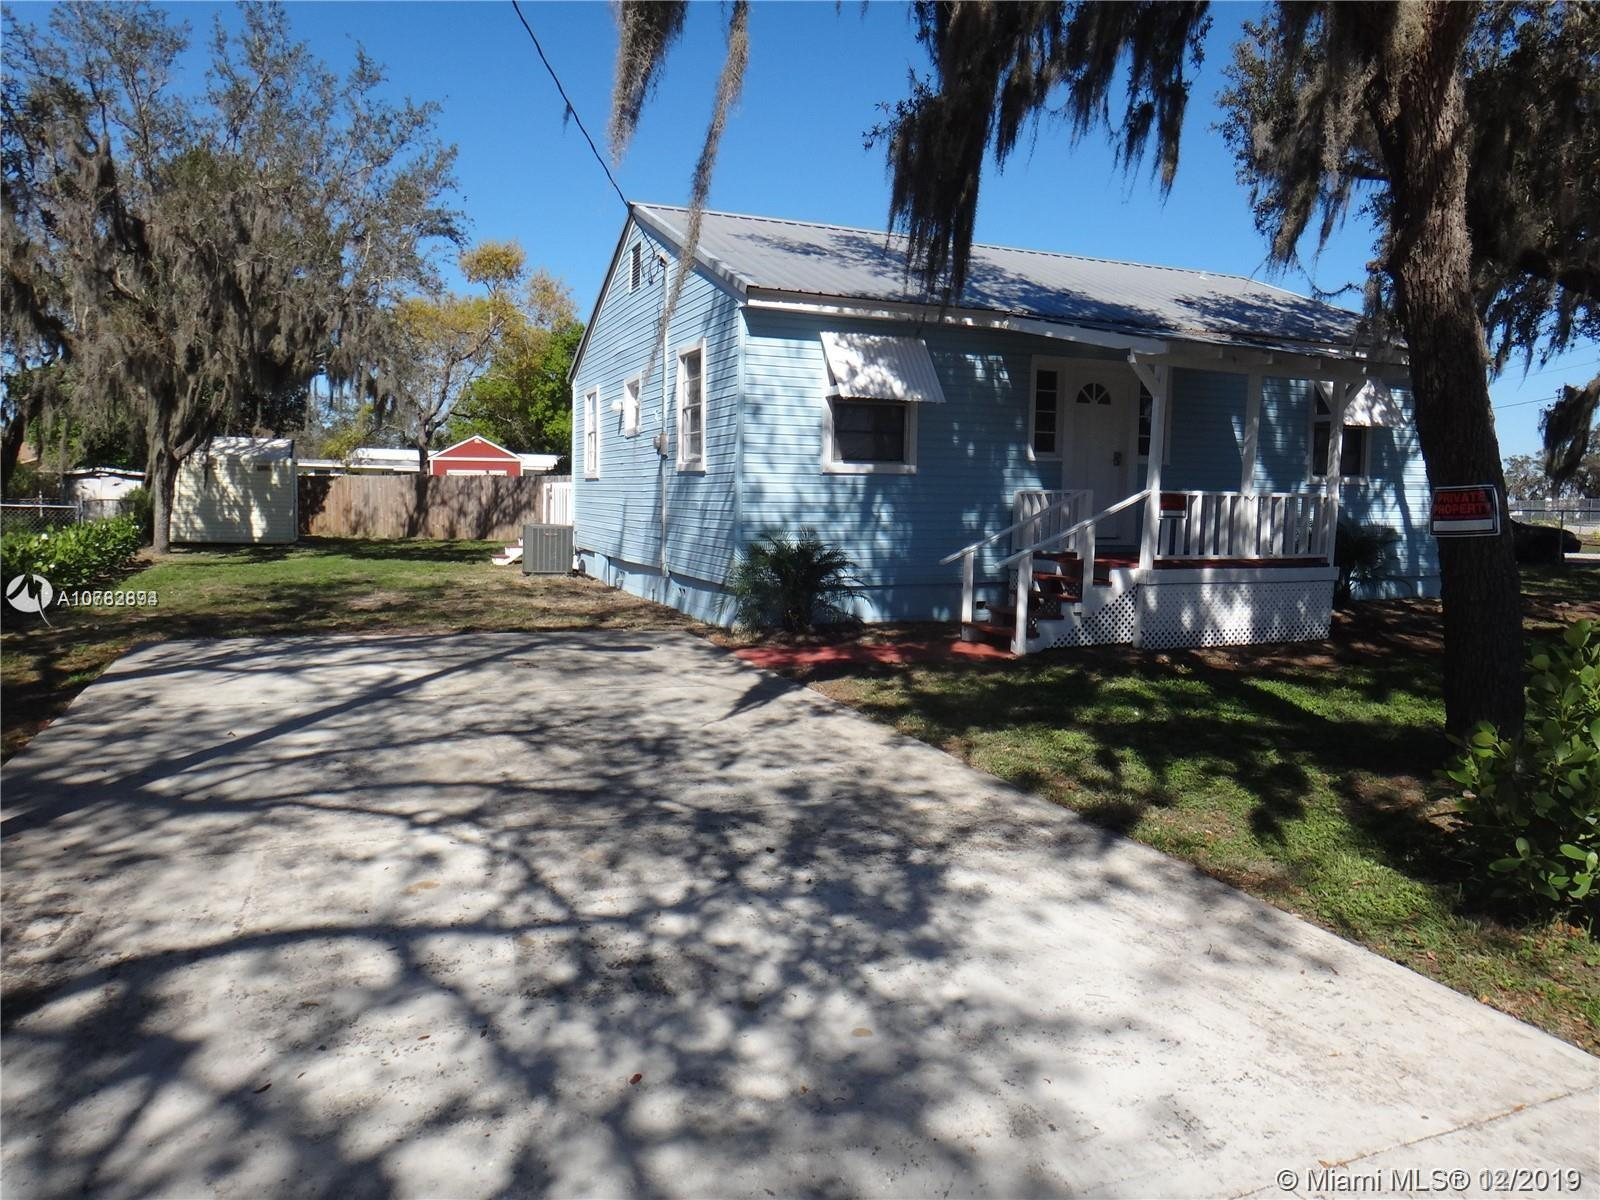 1426 nancesowee  sebring fl 33870, Other City - In The State Of Florida, FL 33870